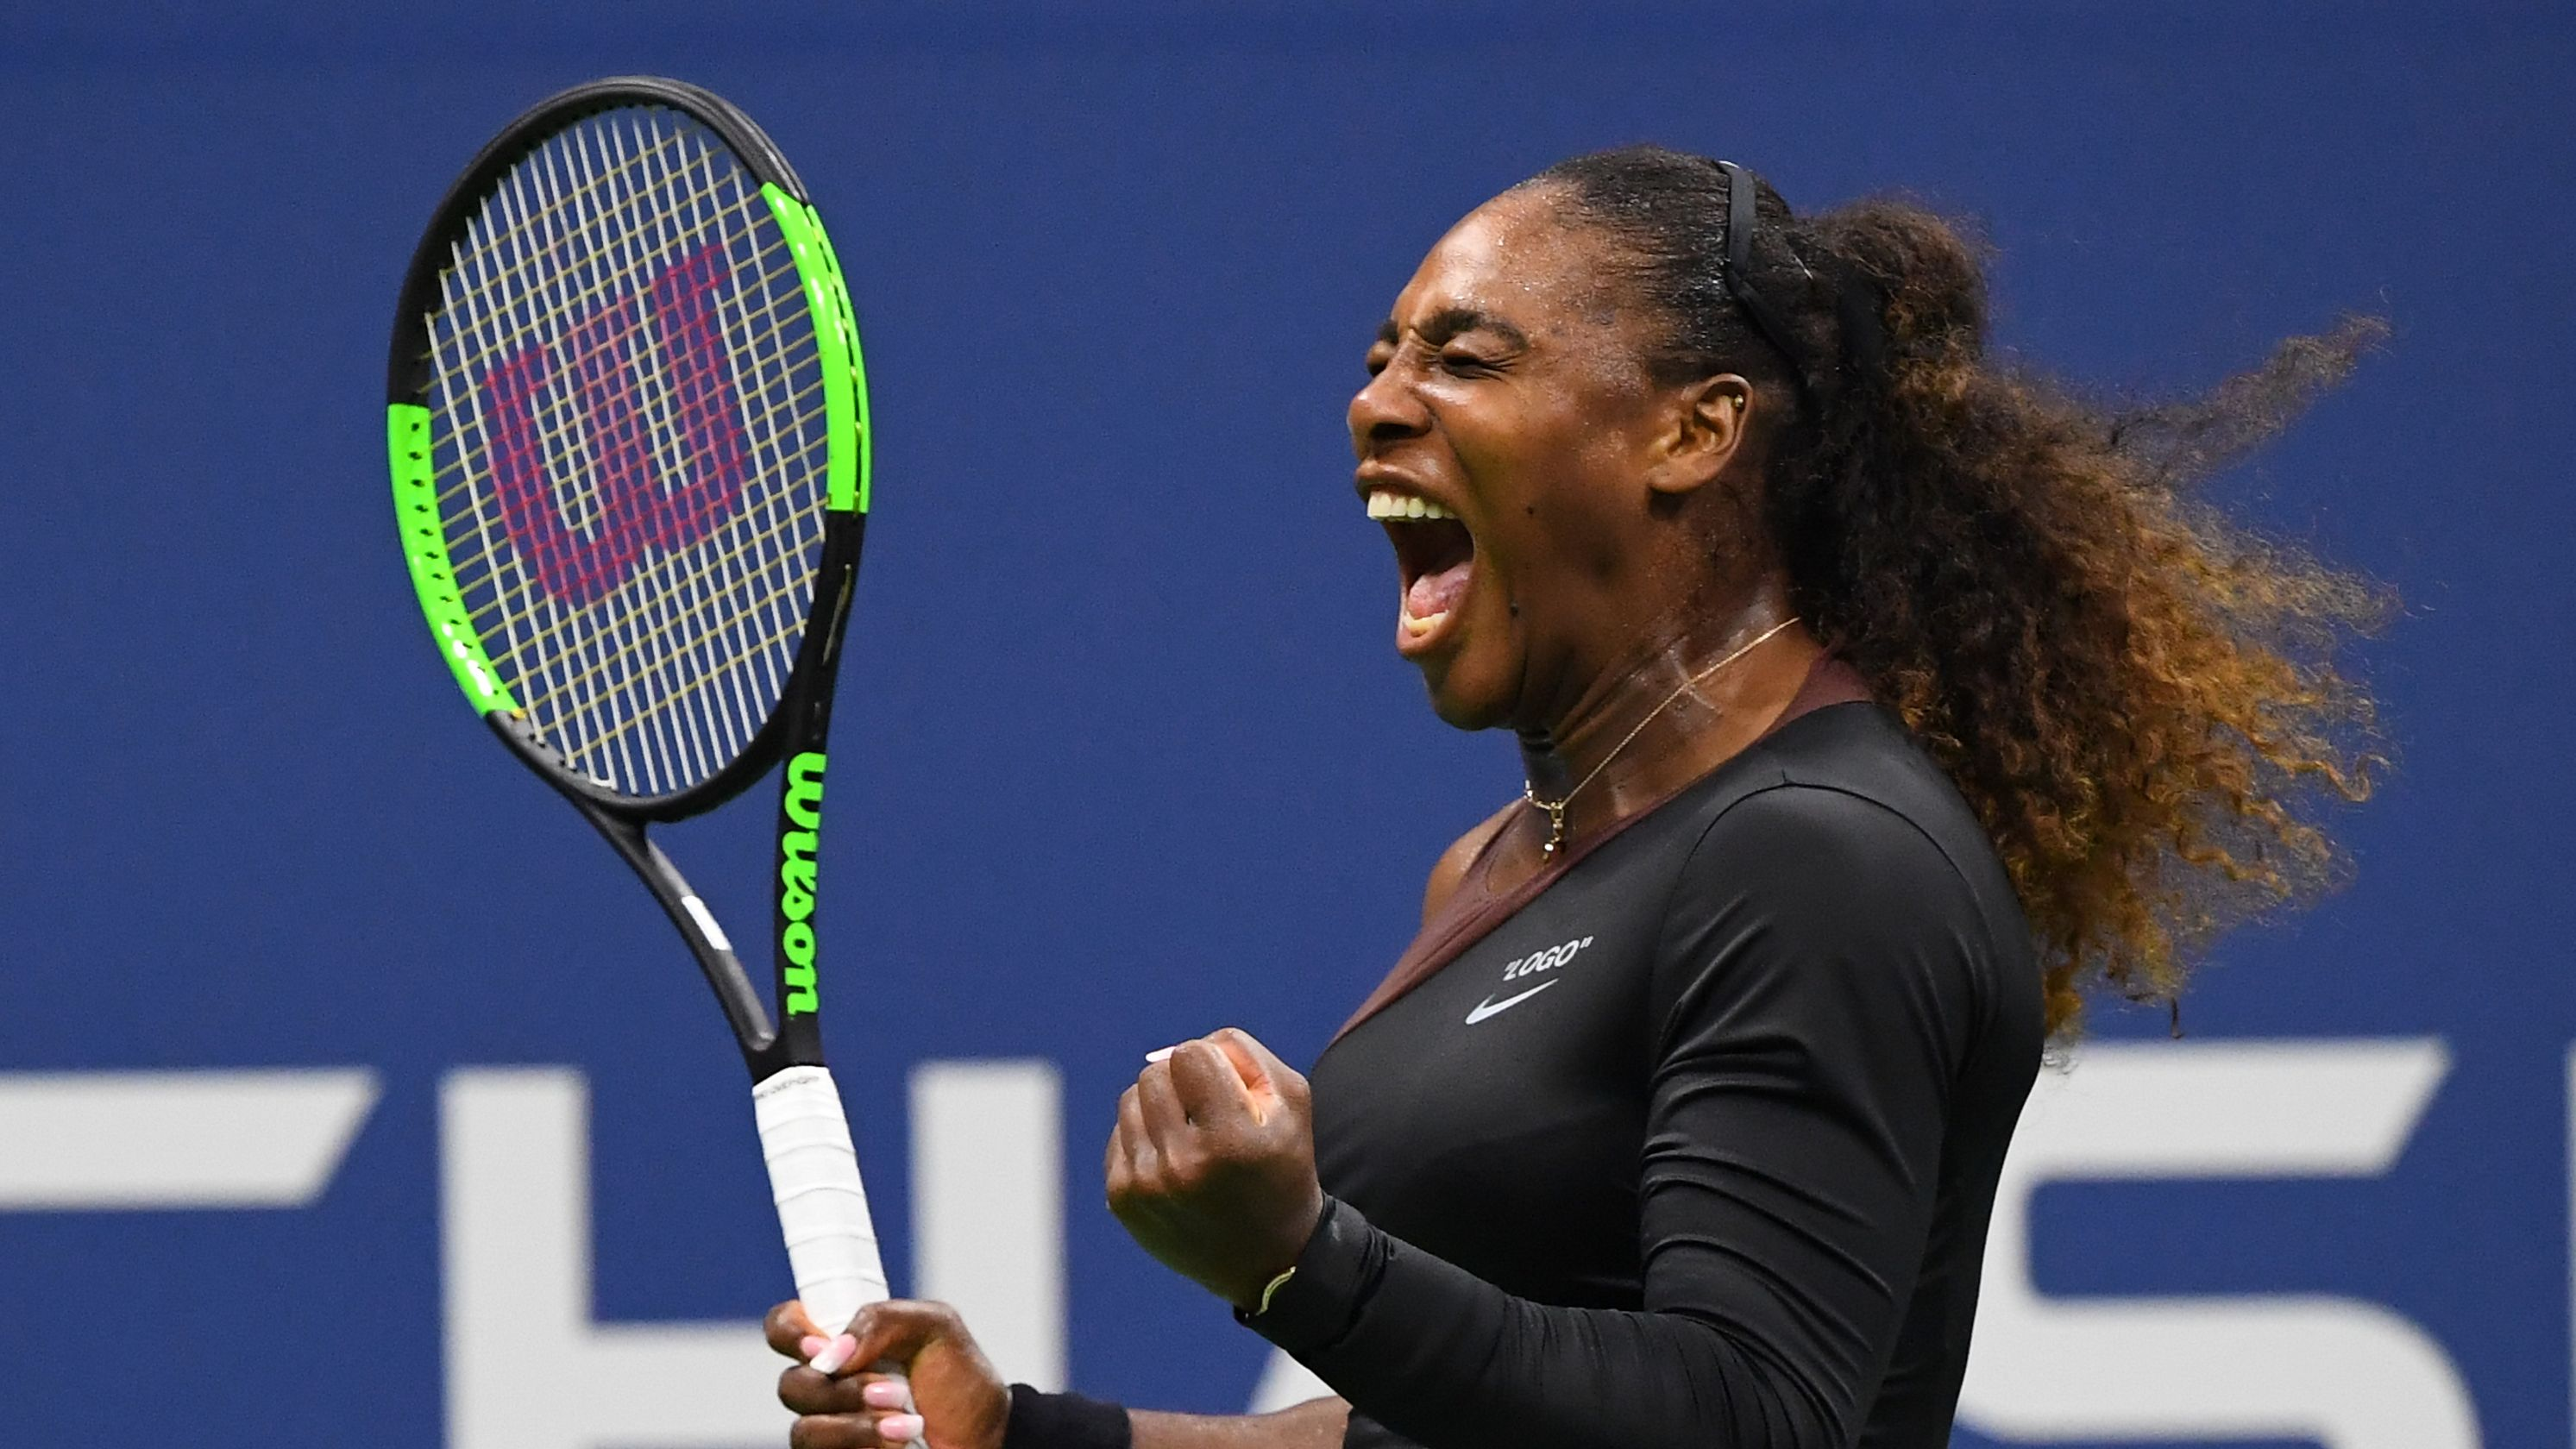 Serena Williams, la force et le courage !